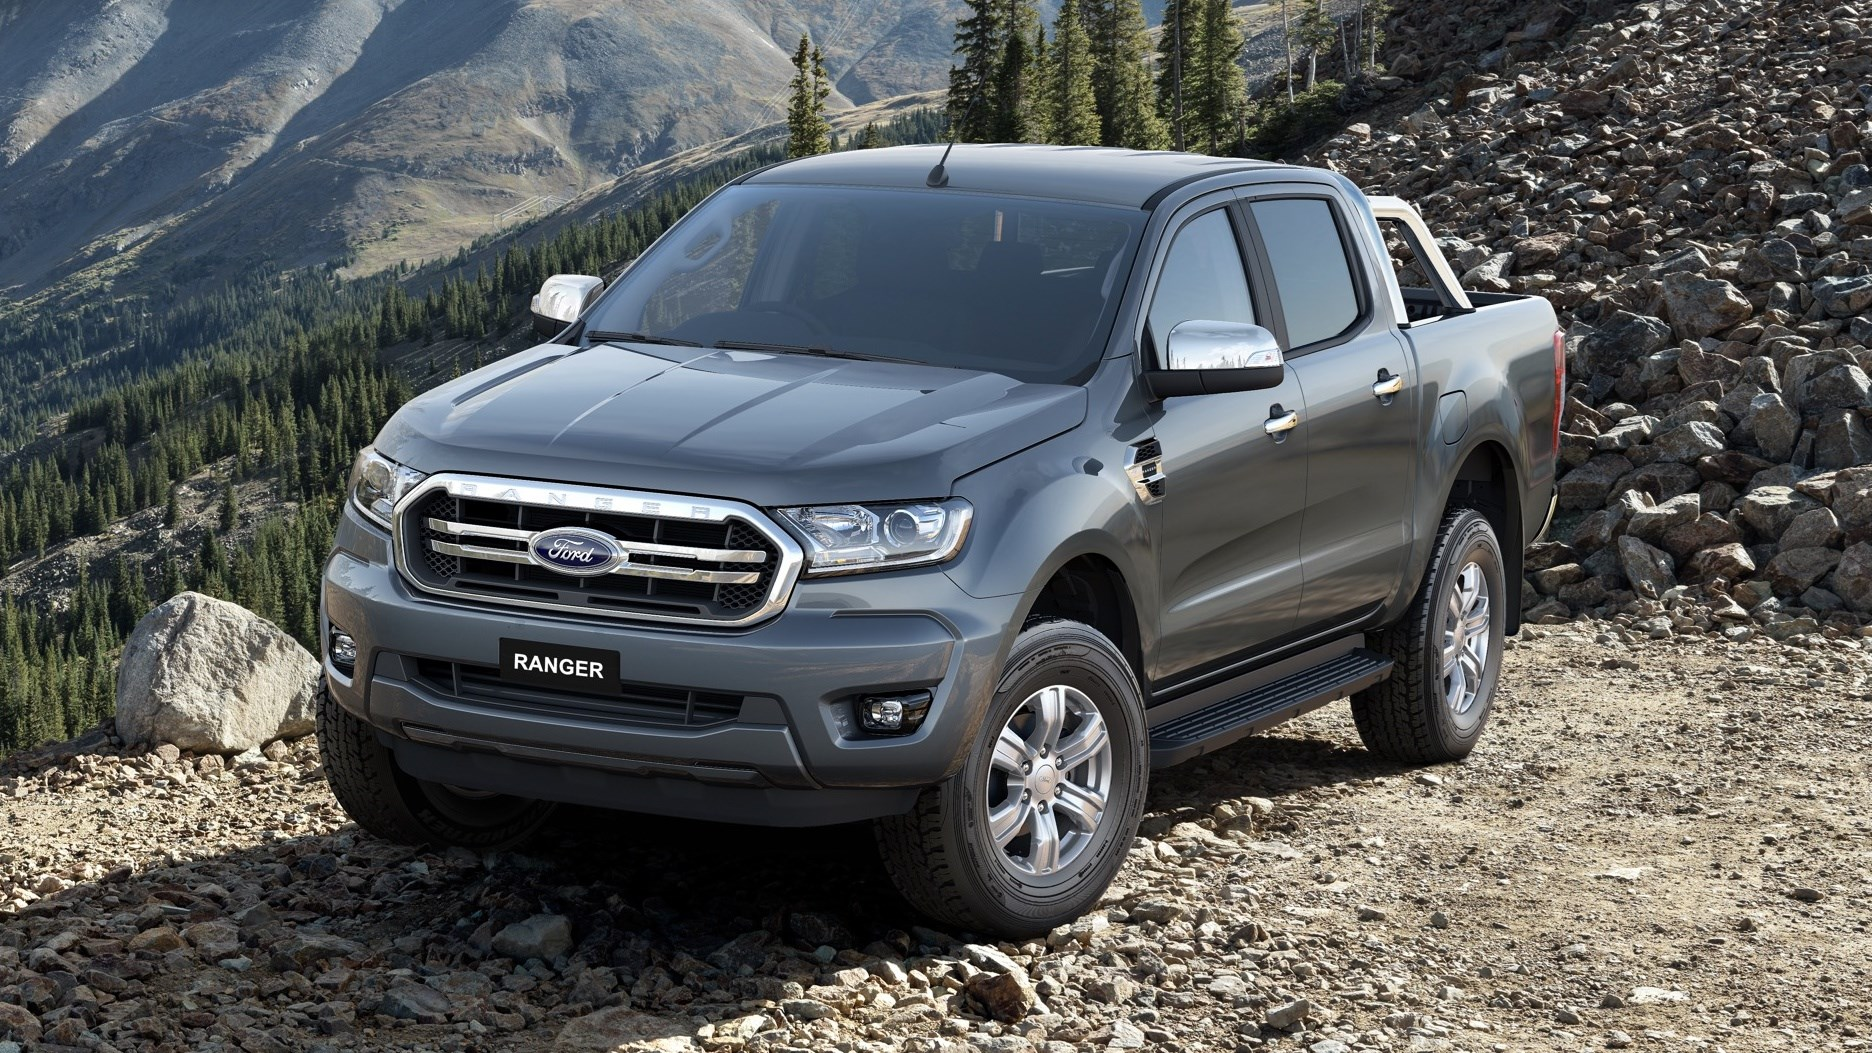 2019 Ford Ranger - Bi-Turbo Raptor Performance Goes Wide Thumbnail